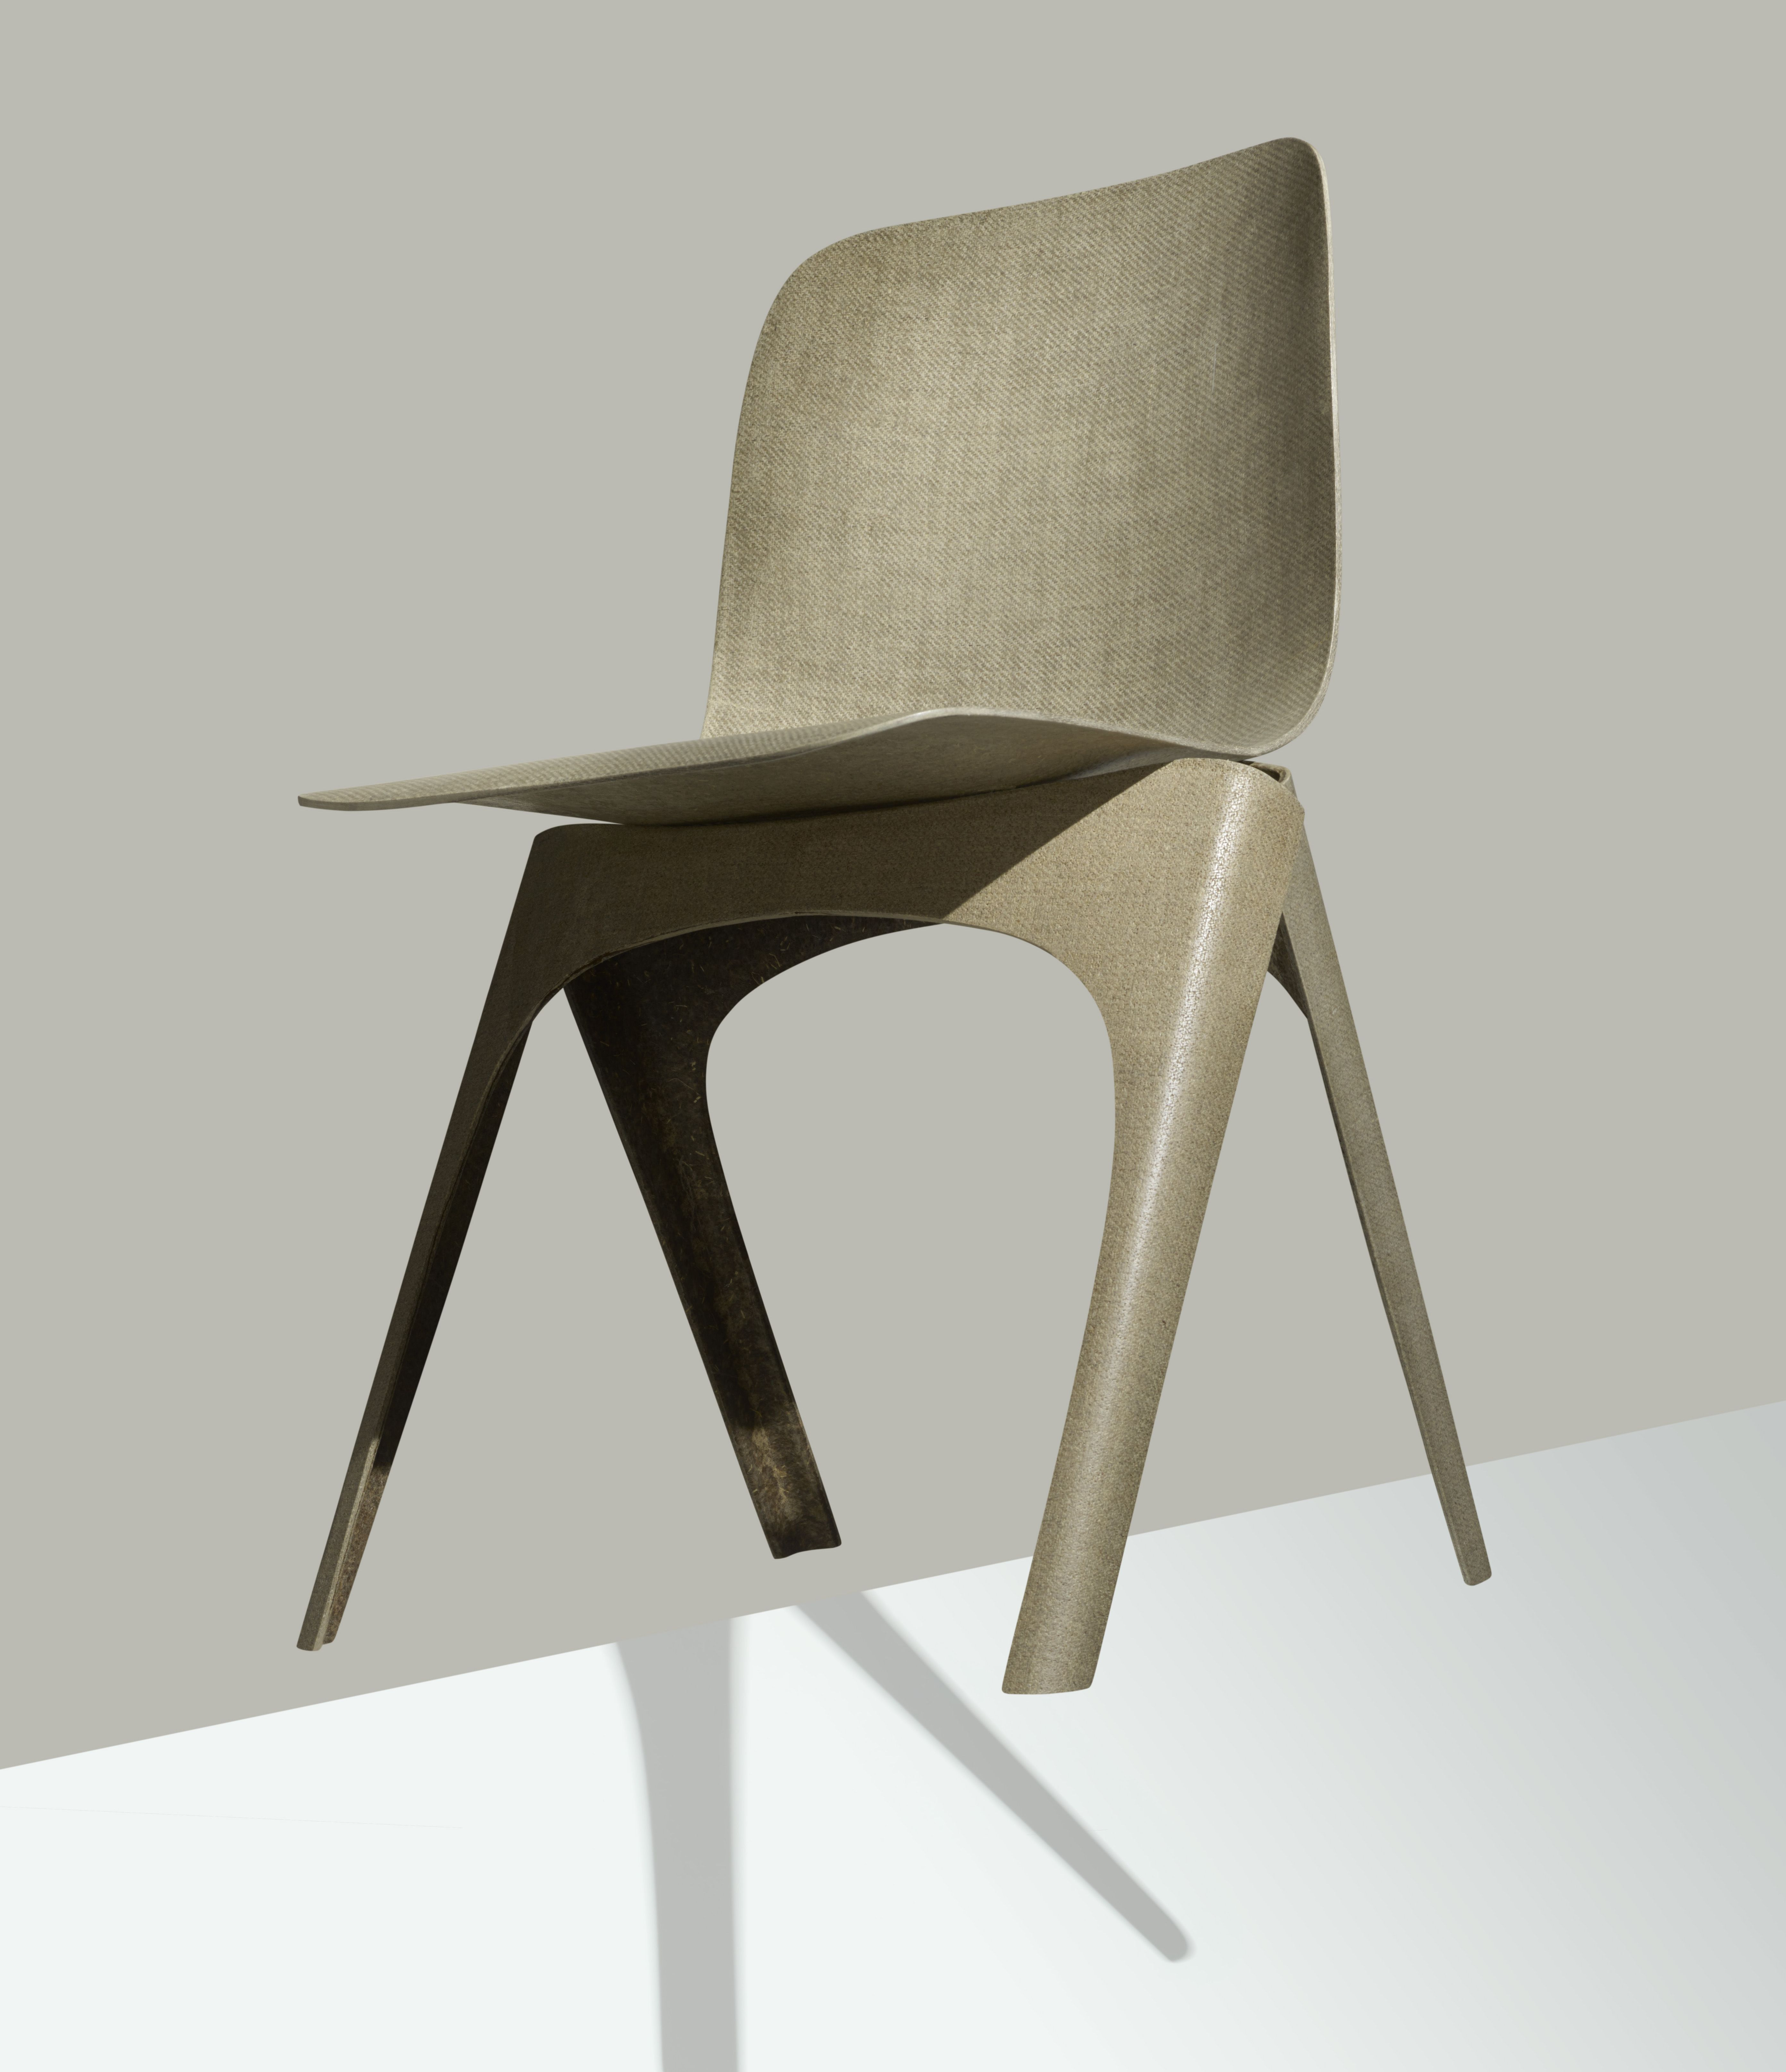 1.41 Flax chair designed by Christien Meindertsma for Label/Breed wins Dutch Design Awards 2016, most promising design for the future!   AVAILABLE FOR ORDERS NOW  For more information visit www.labelbreed.nl or please contact diederik@labelbreed.nl